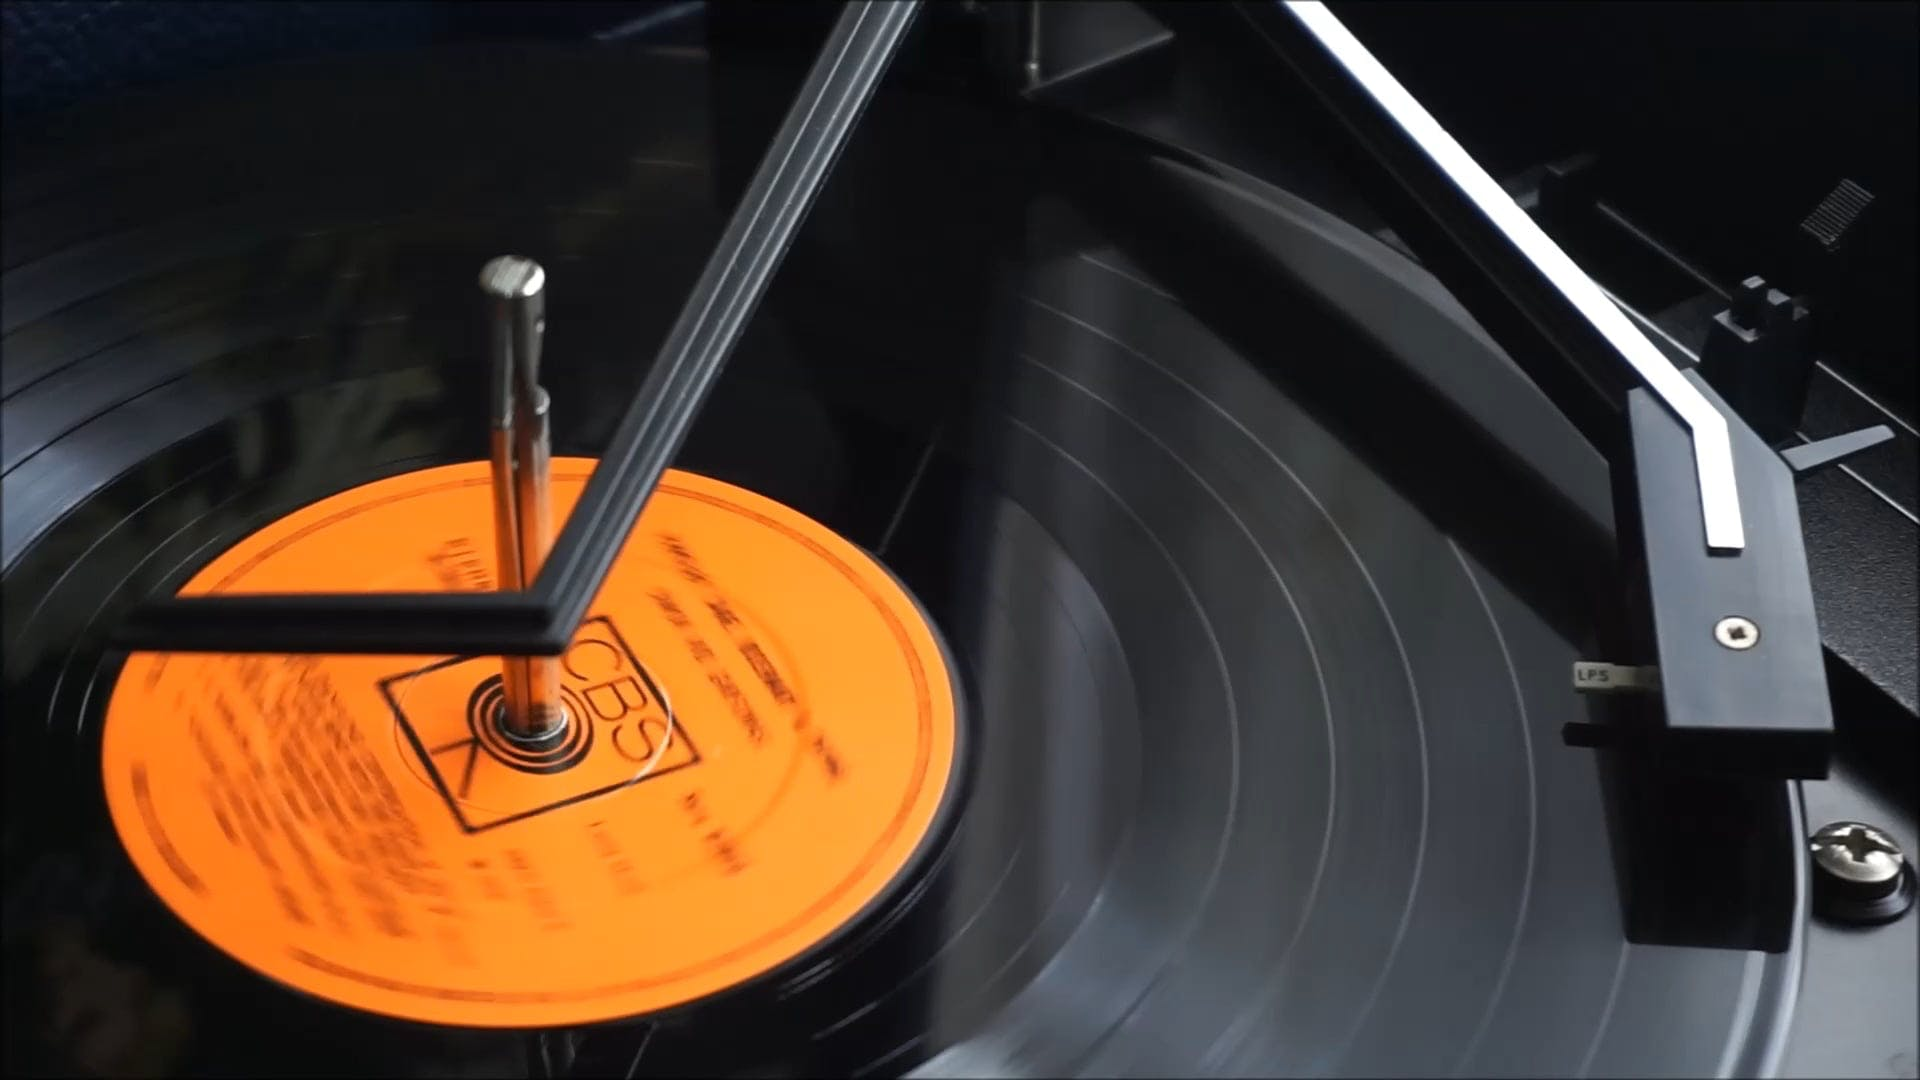 Classic Turntable With Vinyl Record Playing